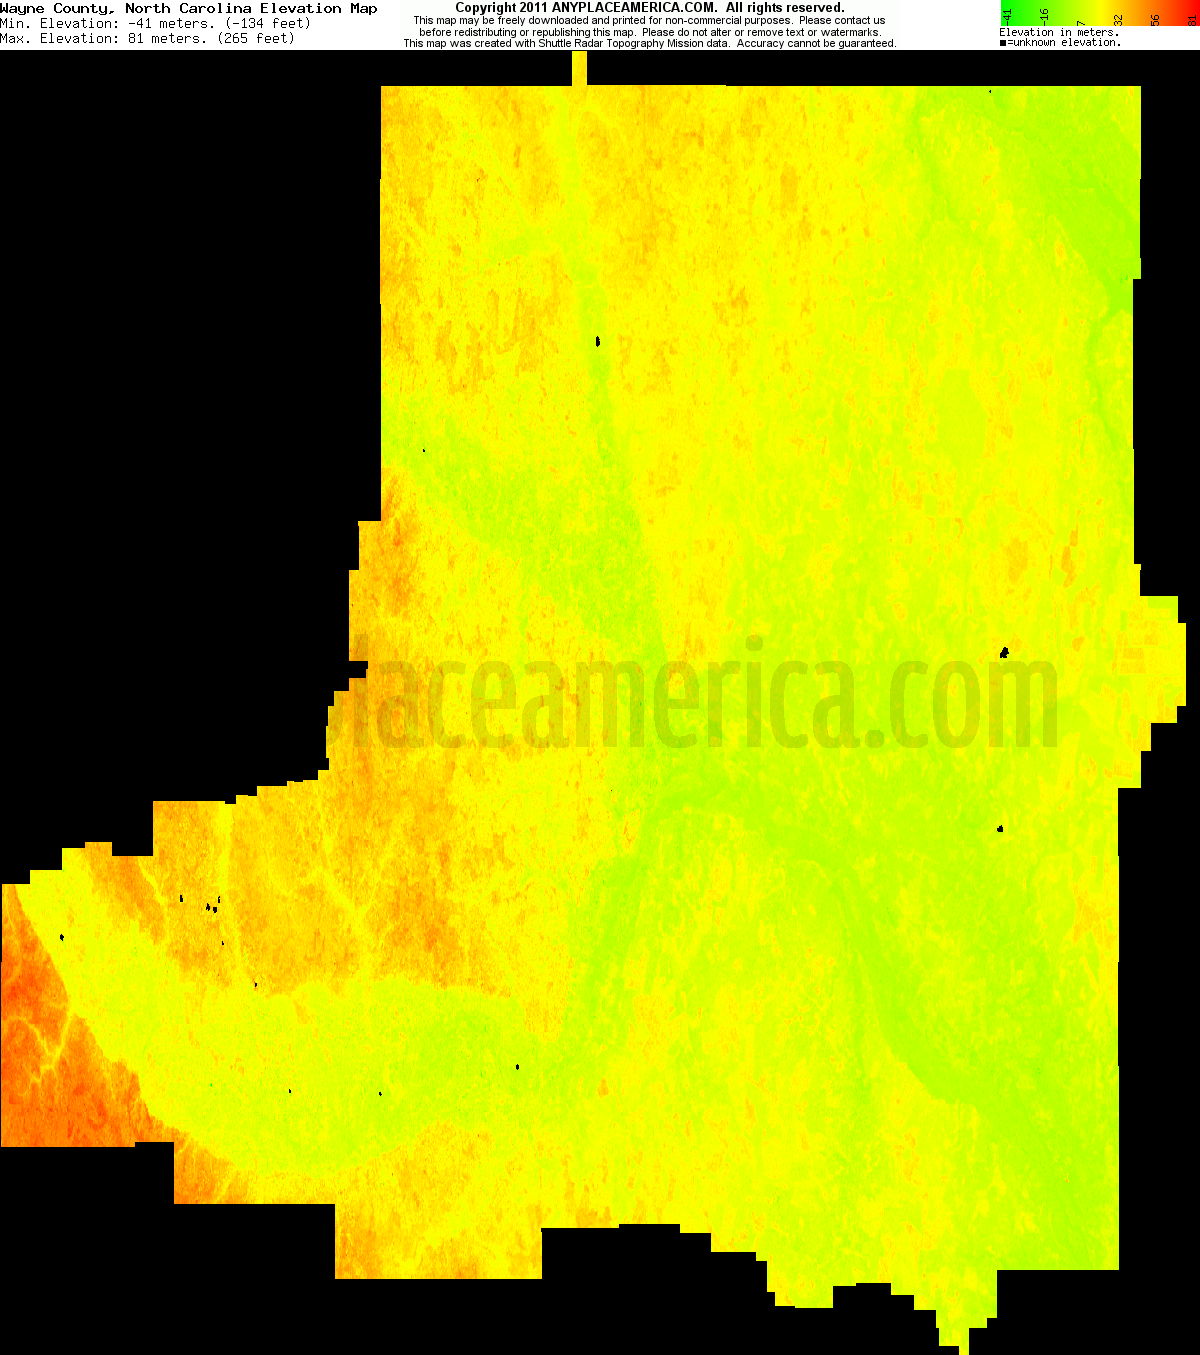 Free Wayne County North Carolina Topo Maps Elevations